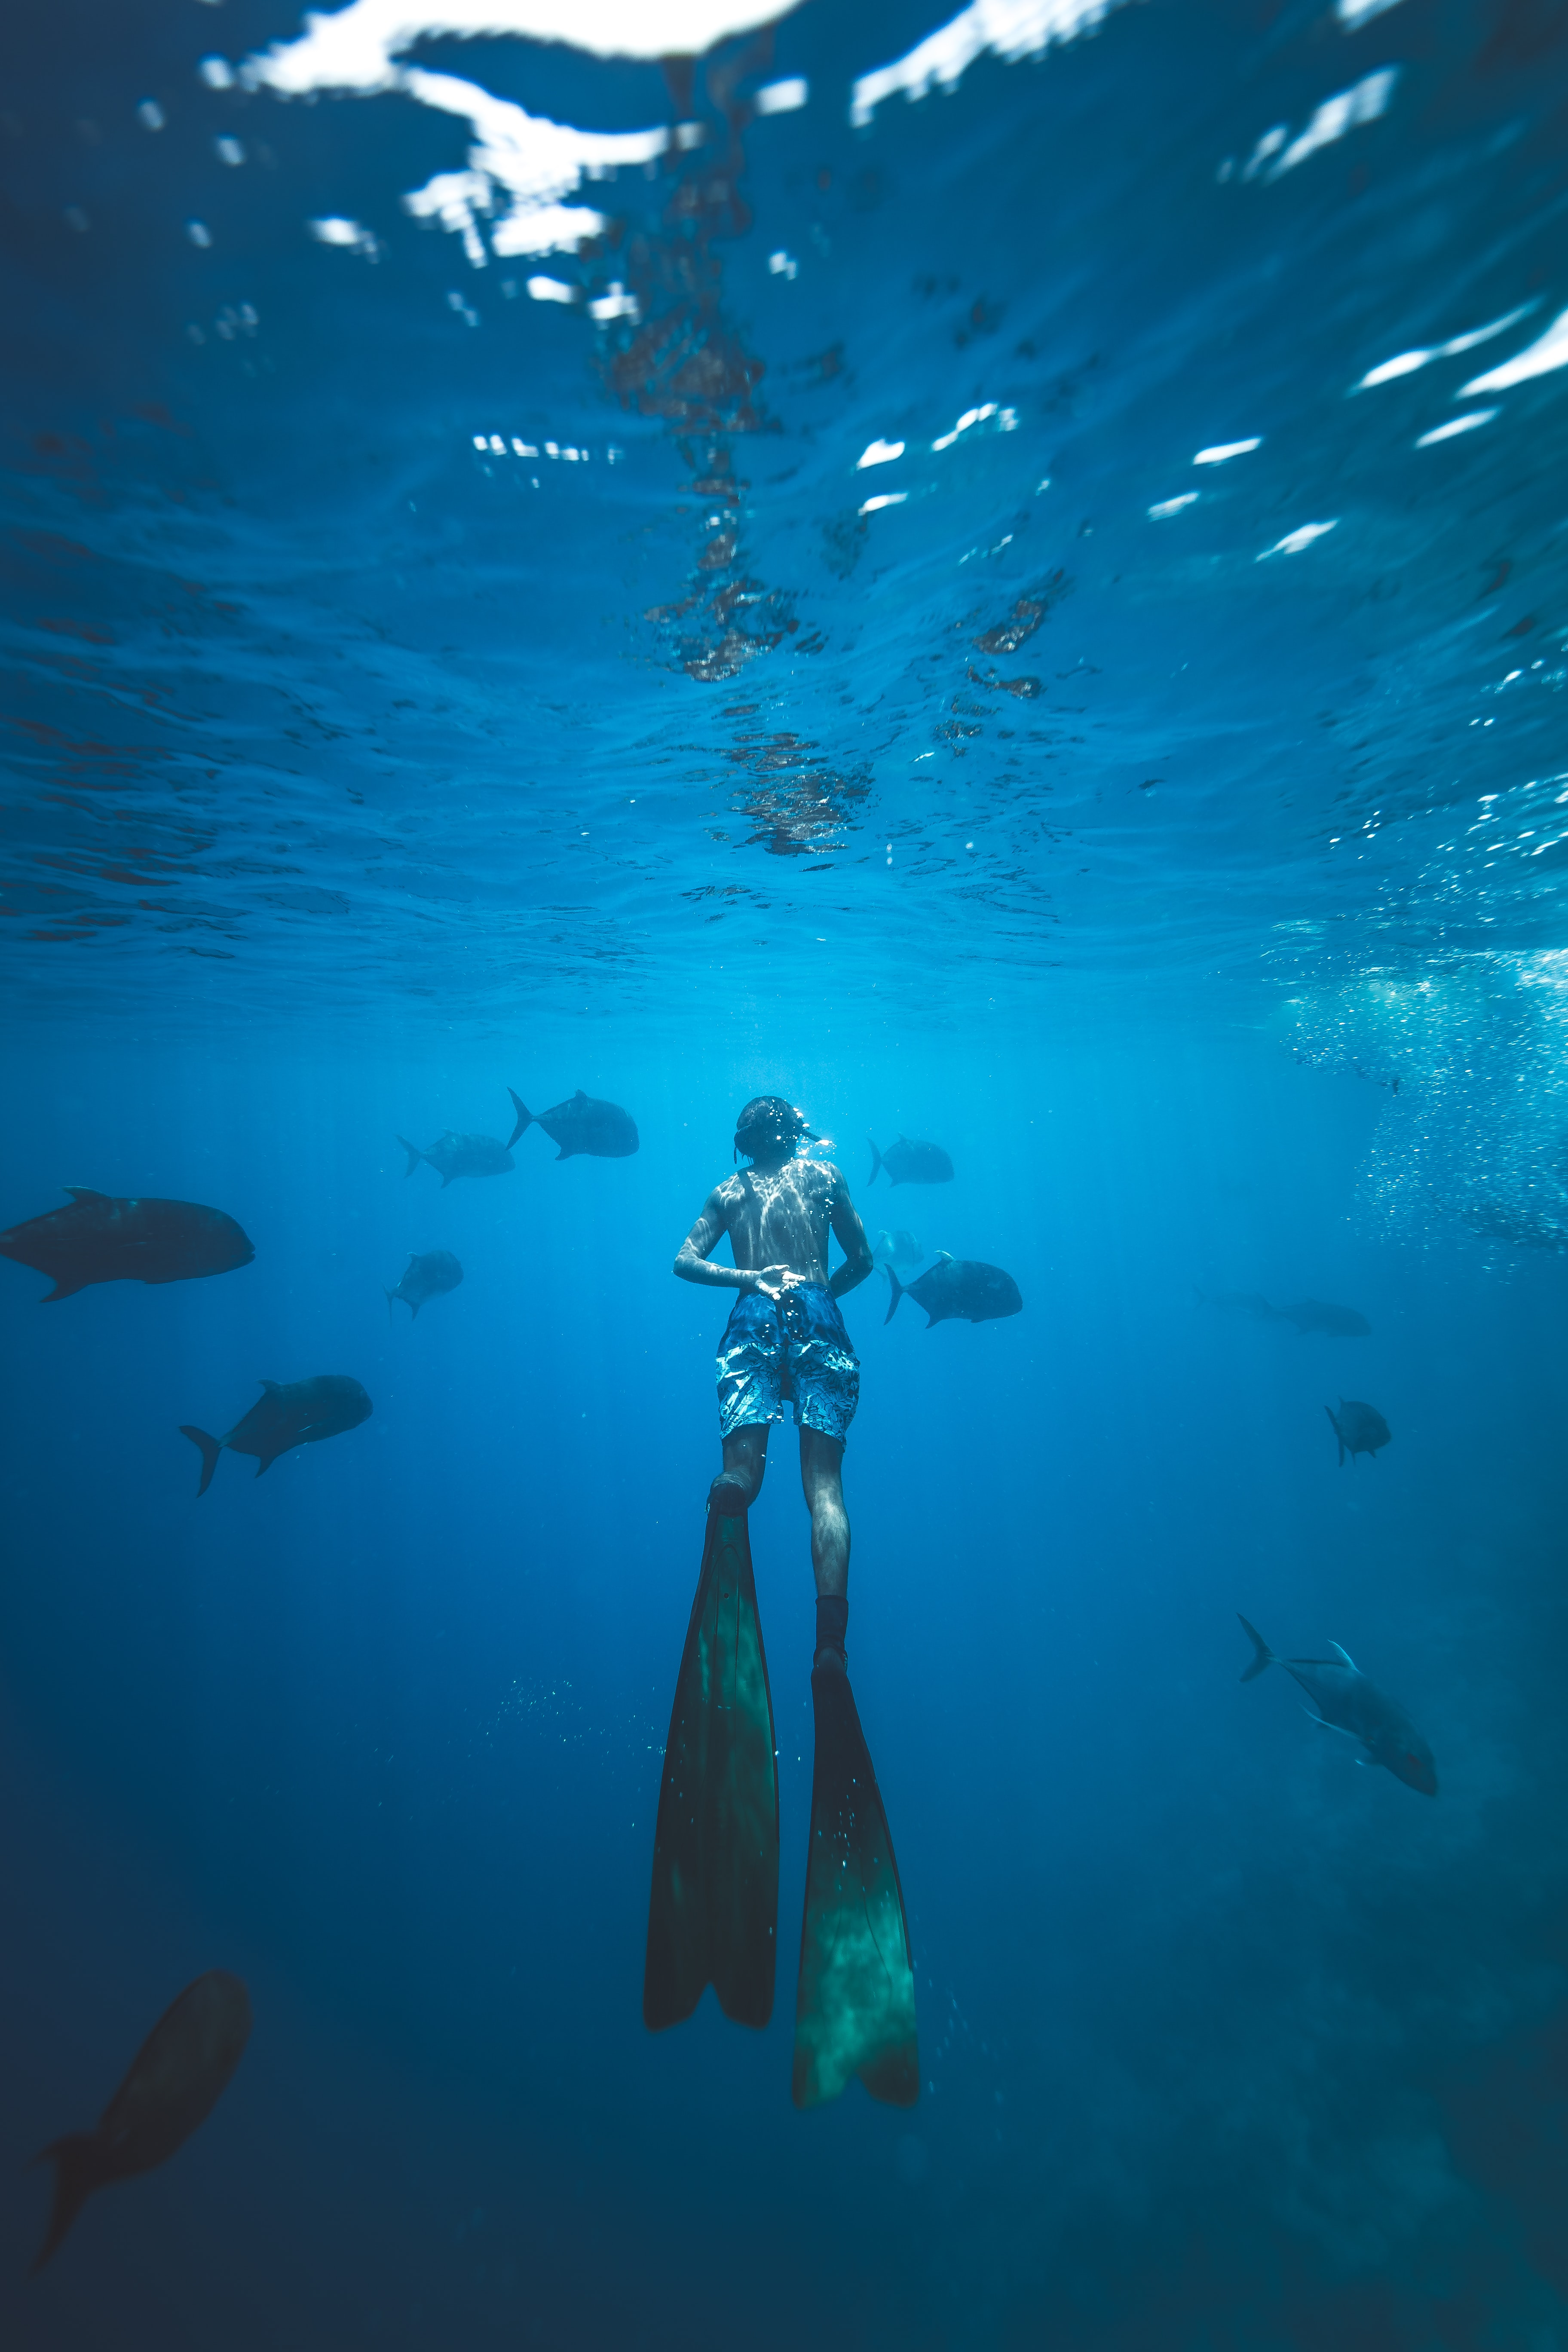 A diver swims underwater with tropical fish in the Maldives